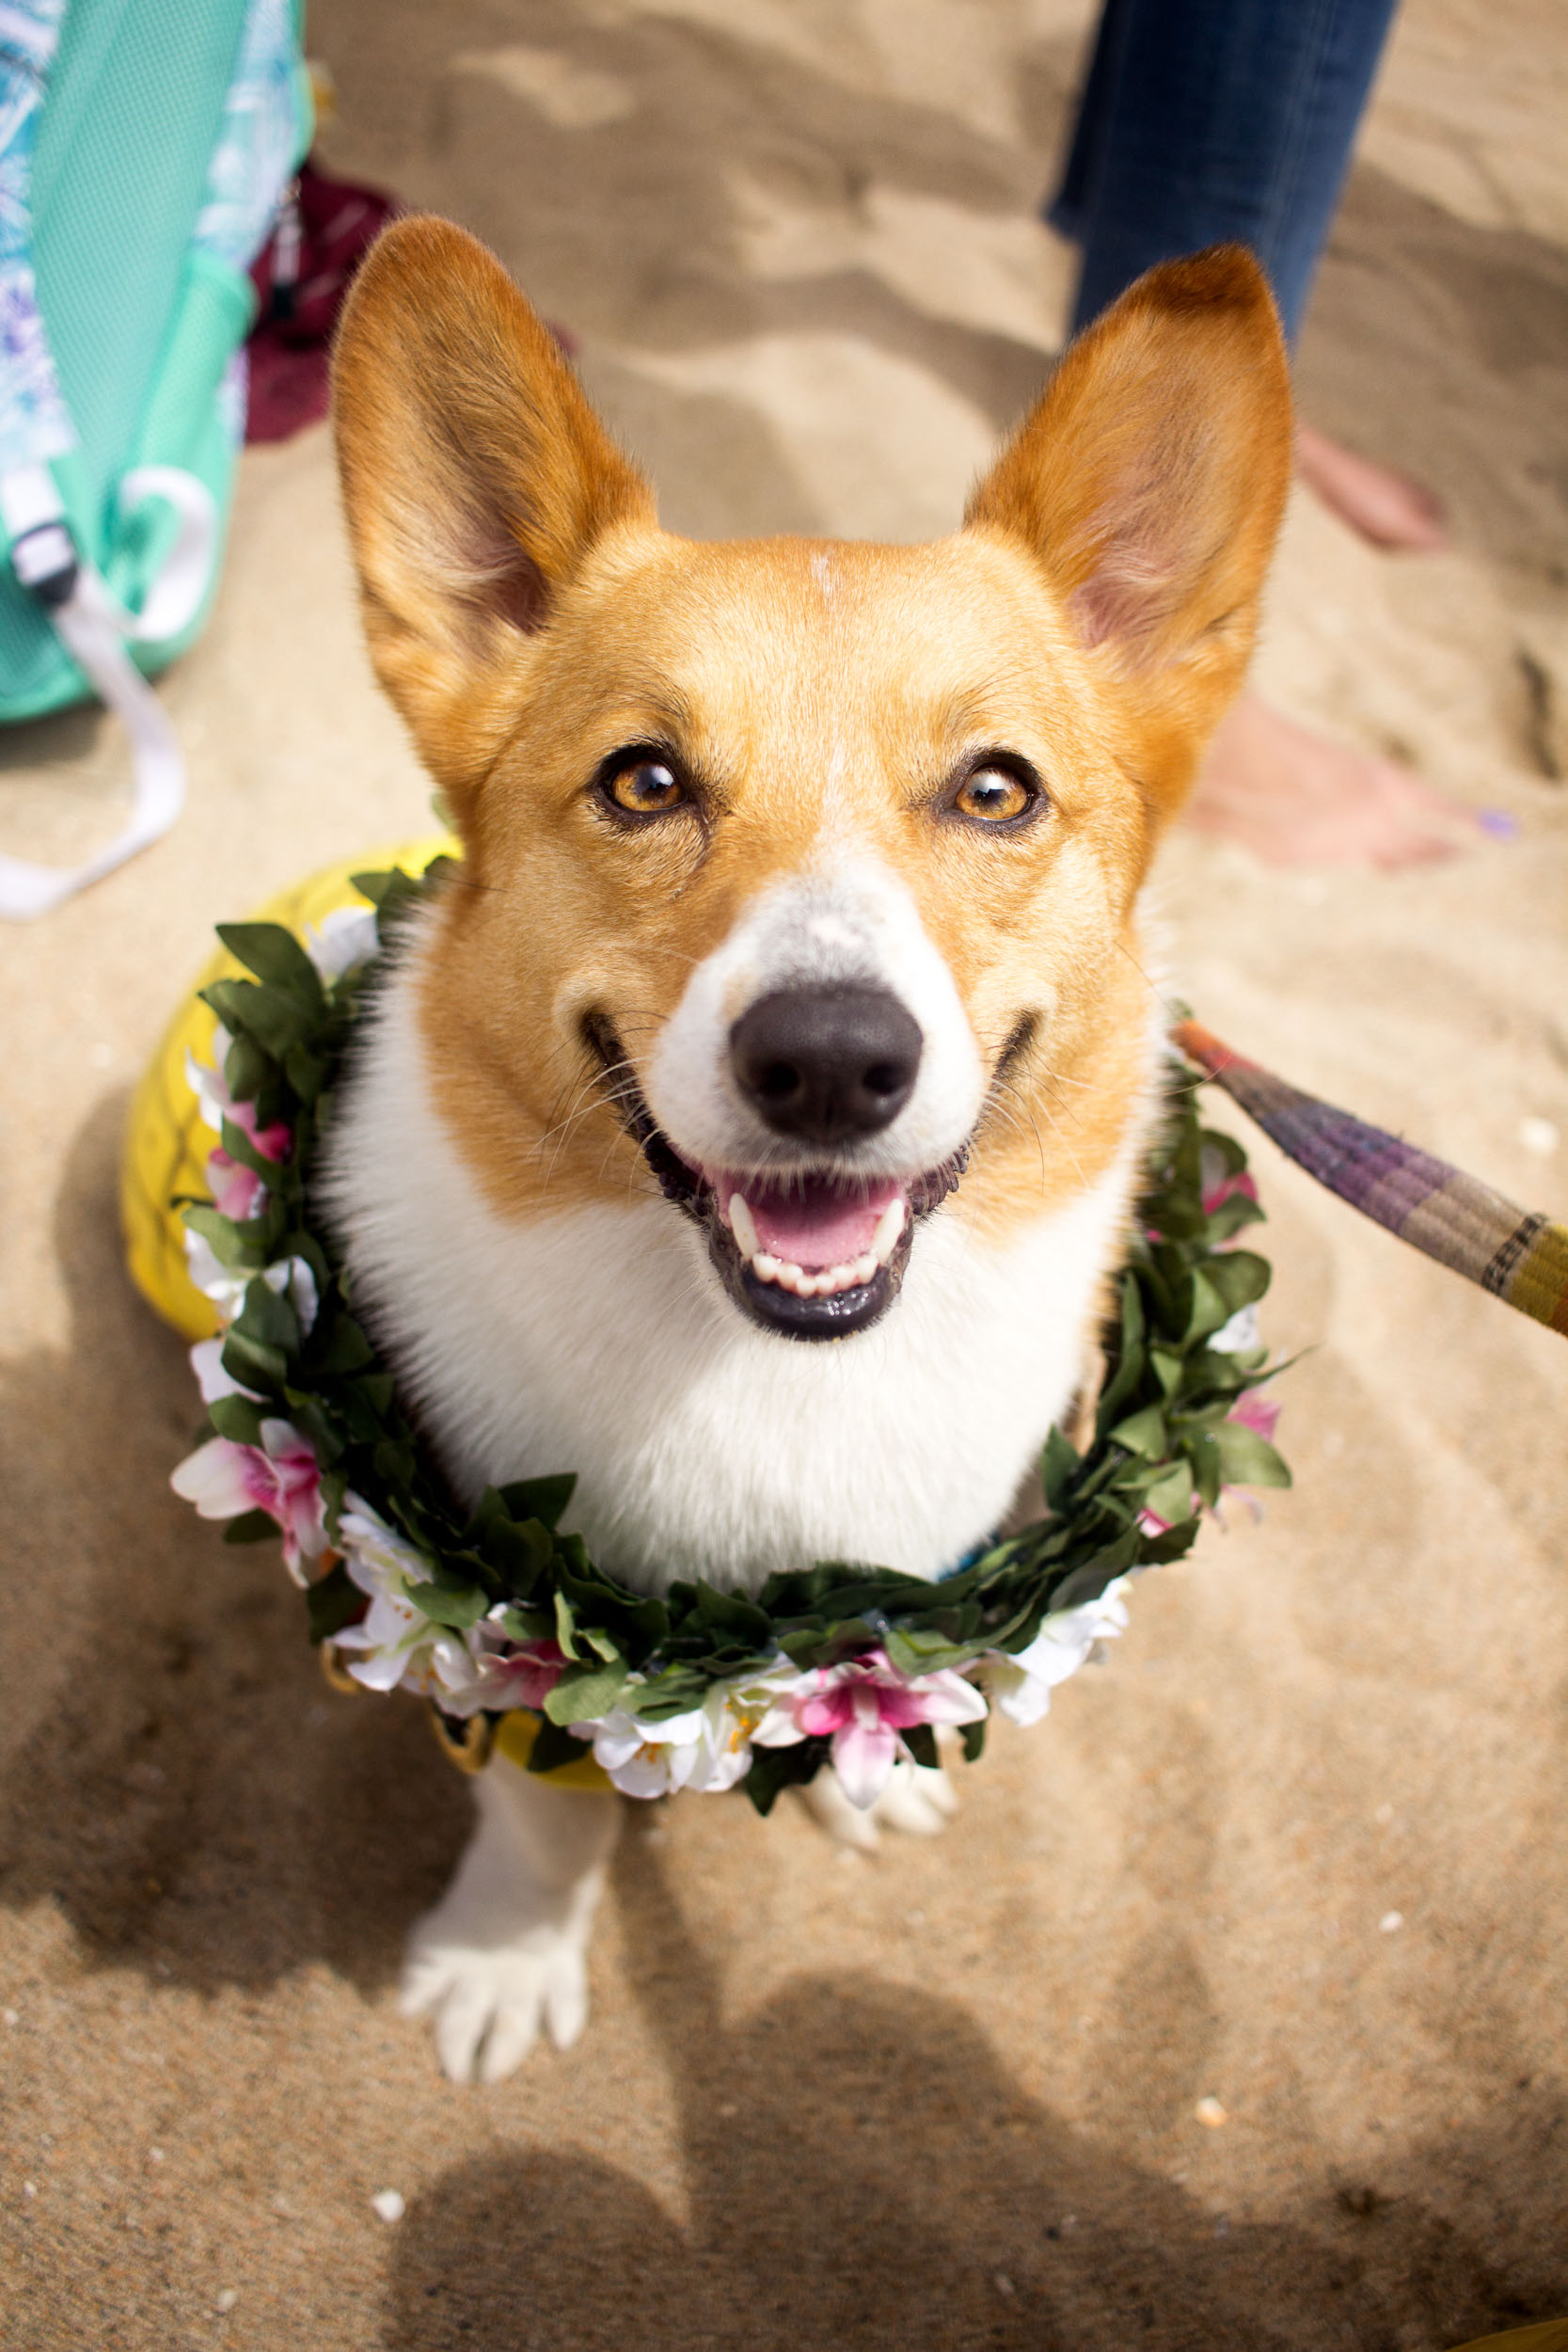 This one's Barley! I've also seen Barley and her partner-in-crime, Bubbles, every time I've been to Corgi Beach Day. They never fail to surprise us with their elaborate costumes! They were posing for pictures and selfies with the public all day, but here I got Barley taking a break in the 'Green Room' for a moment. You can follow Barley and Bubbles on Instagram  here .